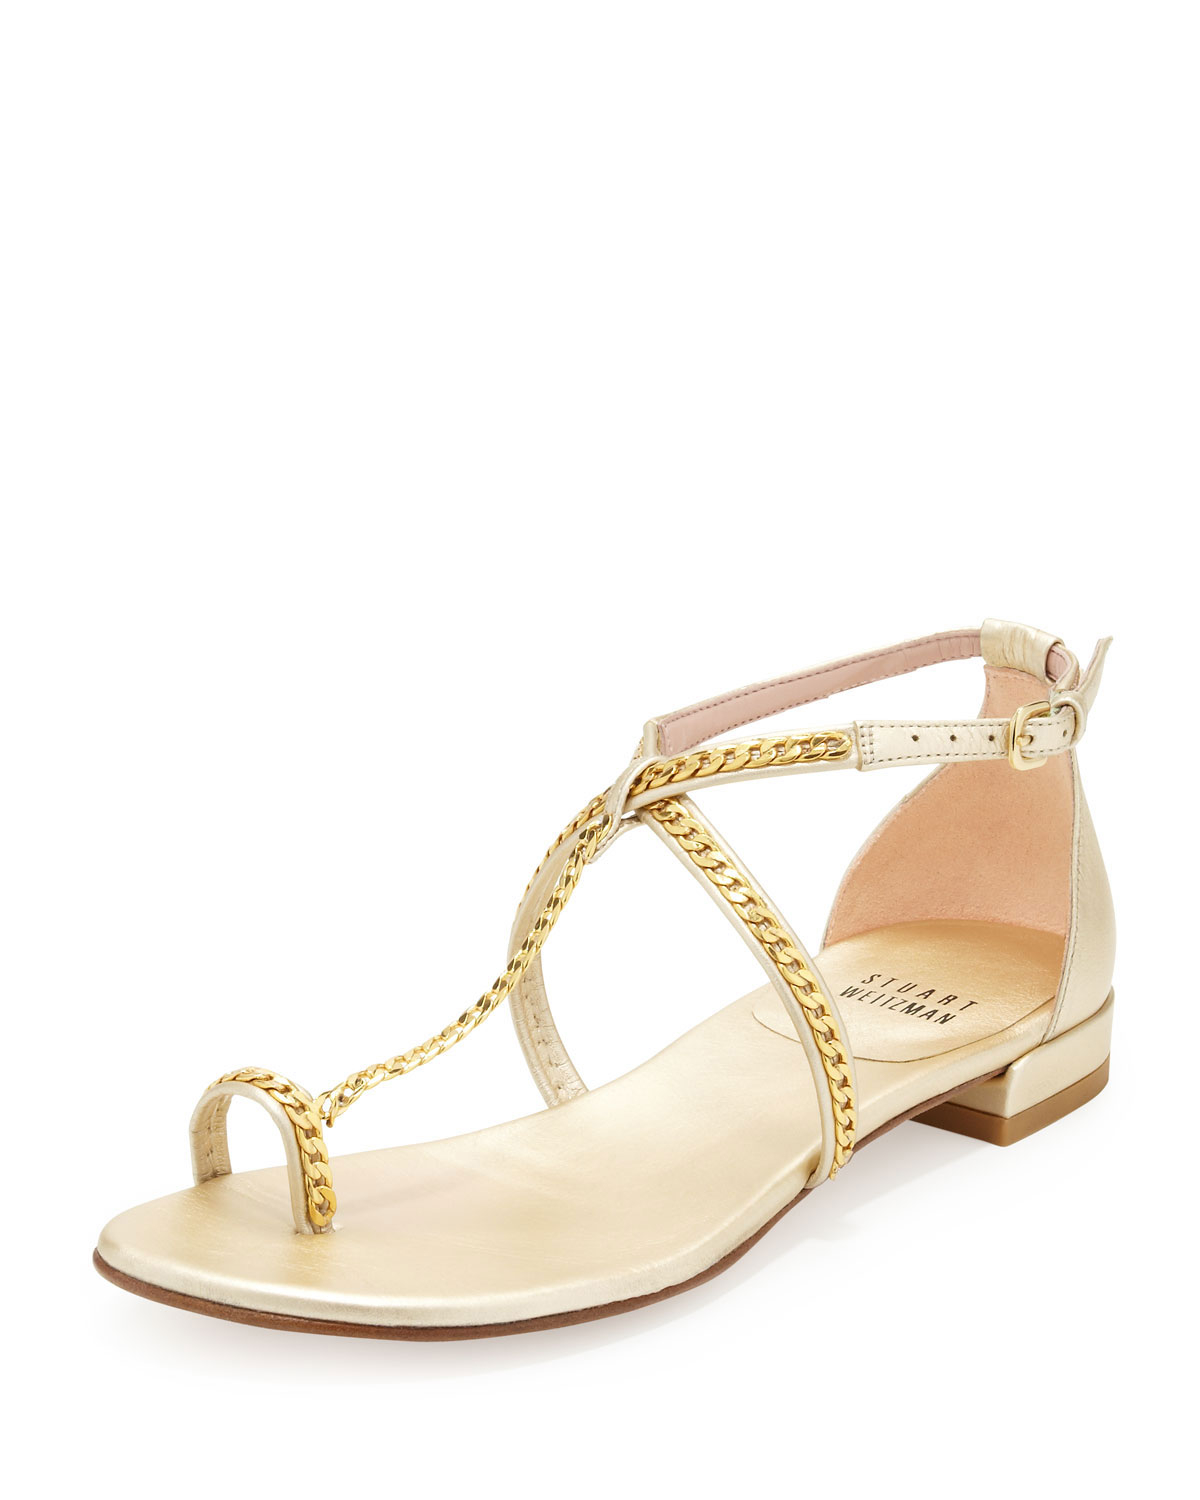 Stuart weitzman Shackle Chainstrap Toering Sandal in White ...